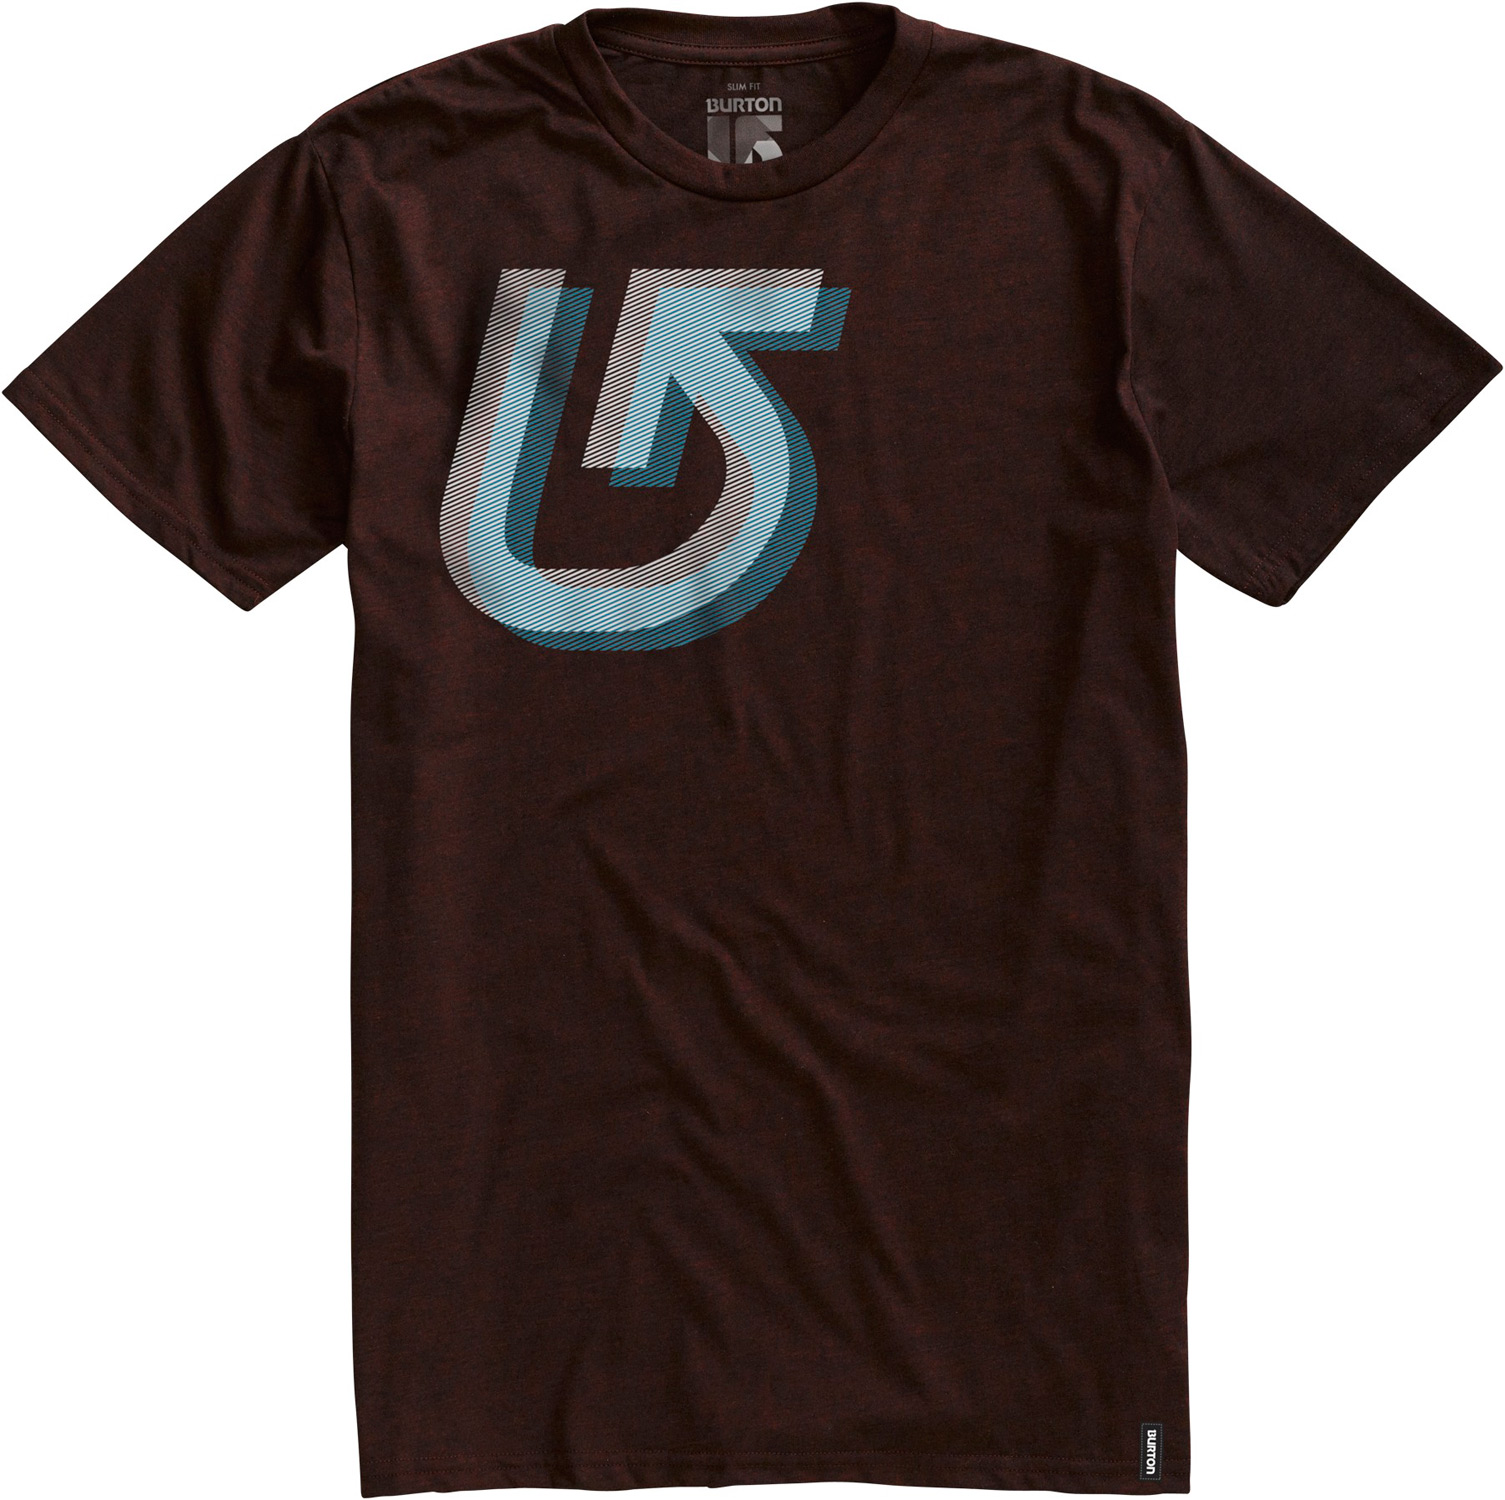 Snowboard Key Features of the Burton Staggered Slim Fit T-Shirt: 50% Cotton / 50% Polyester [Heather Mocha and Heather Swedish blue] 100% Cotton [all other Colorways] Screen Print on Front Slim Fit - $12.95